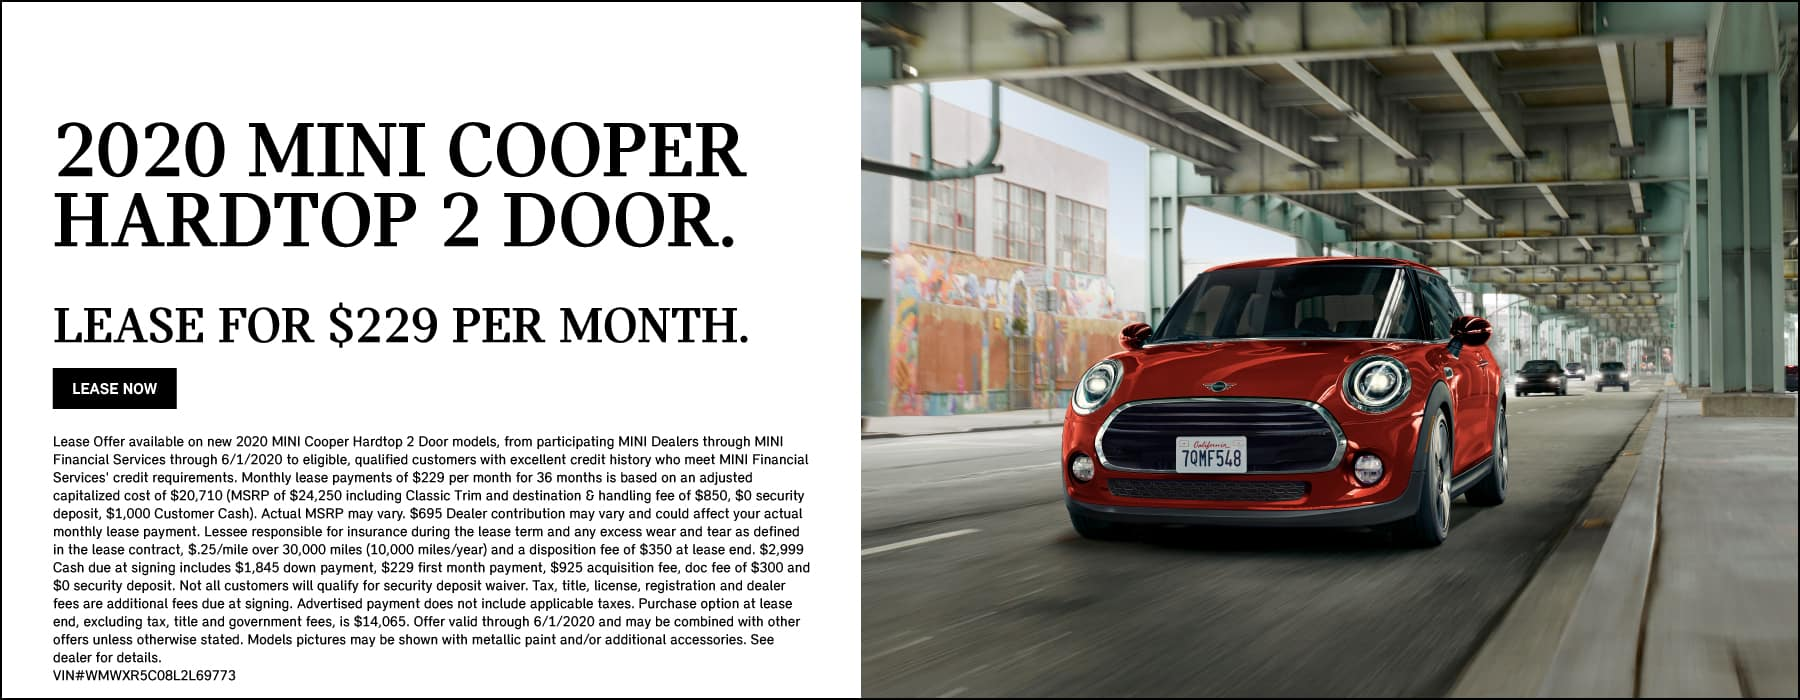 2020 MINI Cooper Hardtop 2 Door Lease: $229/MO for 36 months